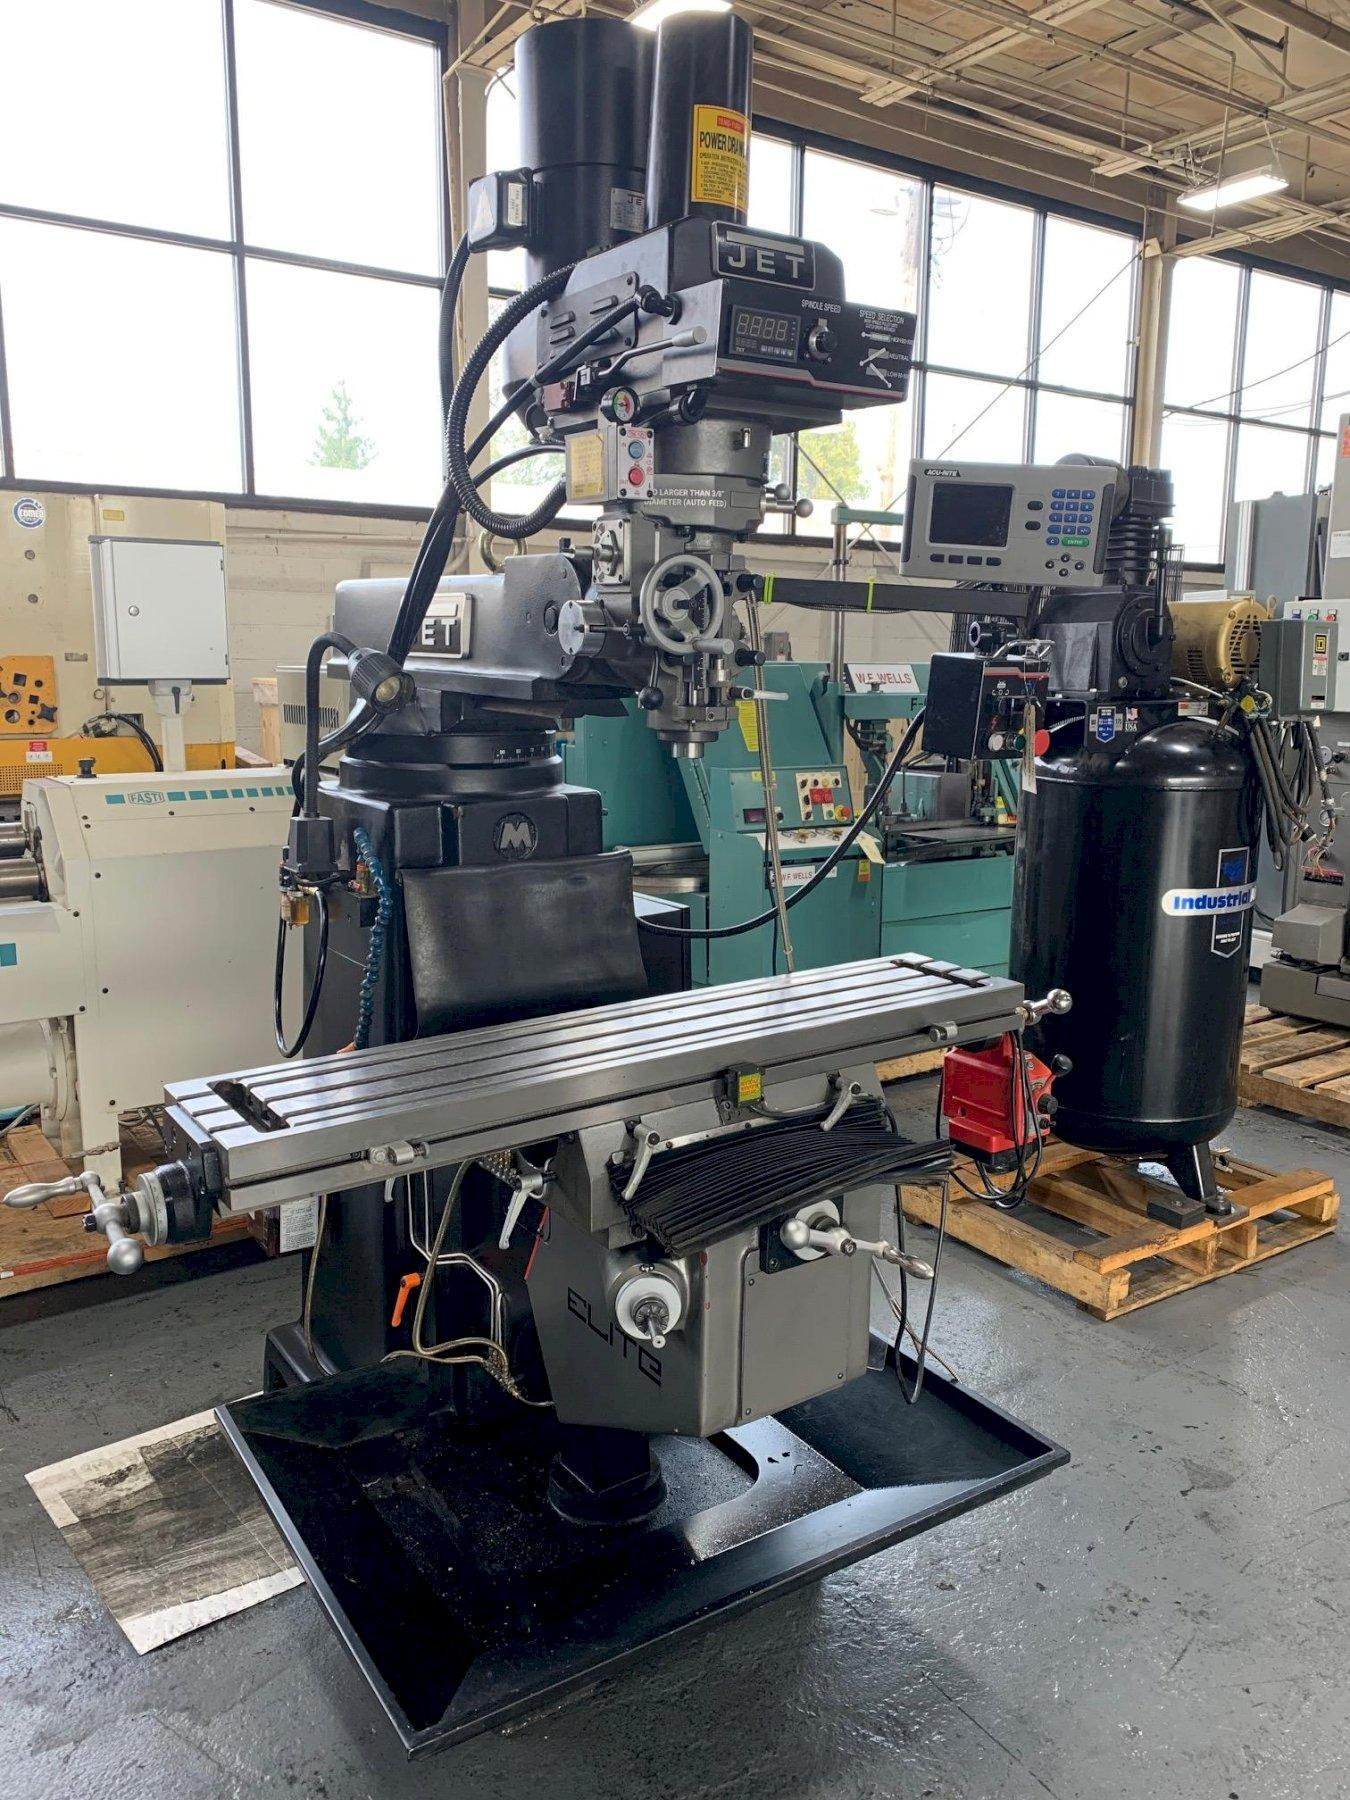 USED JET VERTICAL KNEE MILL MODEL ETM1050EVS, Year 2014, STOCK NO. 10624